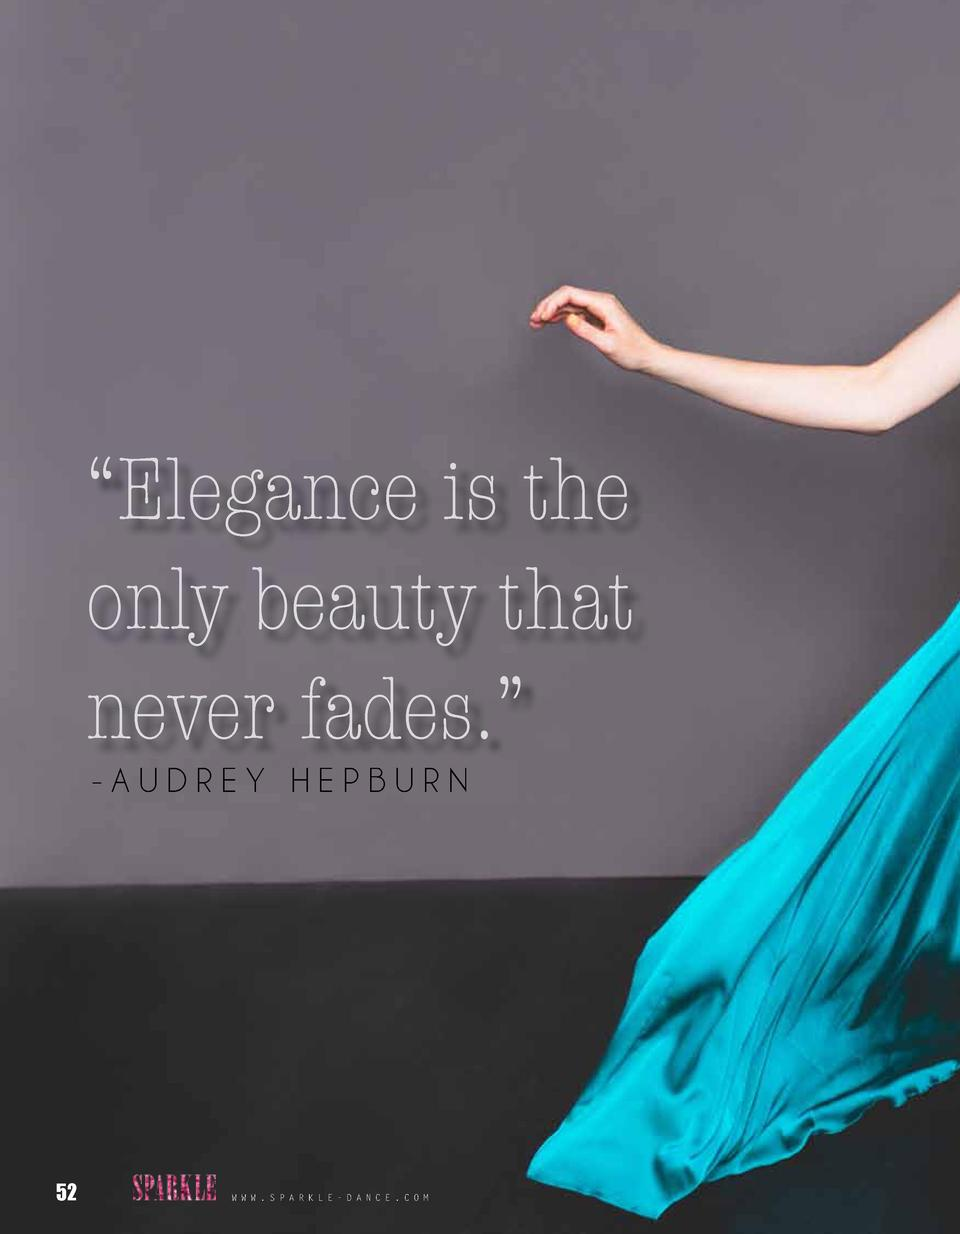 Elegance is the only beauty that never fades.    -AUDREY HEPBURN  52  W W W . S P A R K L E - D A N C E . C O M